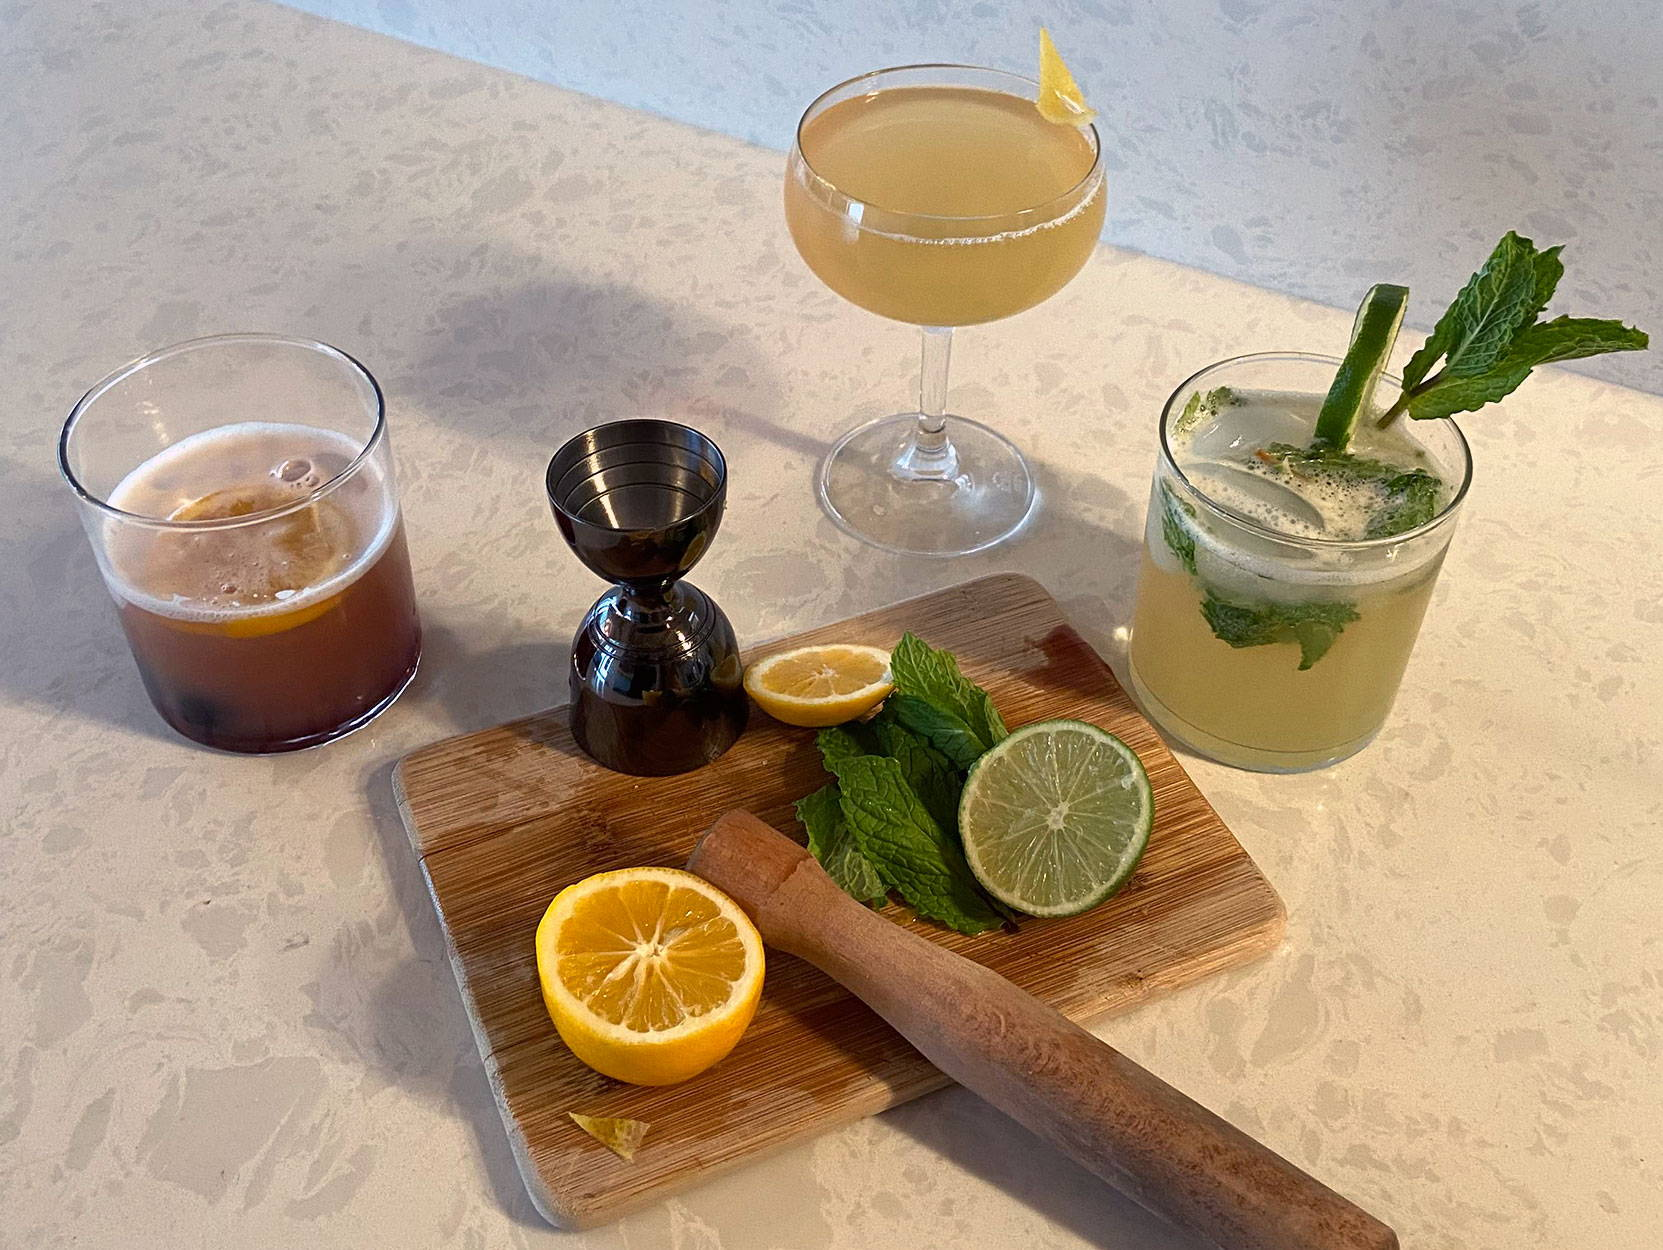 Some of our favorite international cocktails: a Singapore Sling, a French 75, and a Mojito